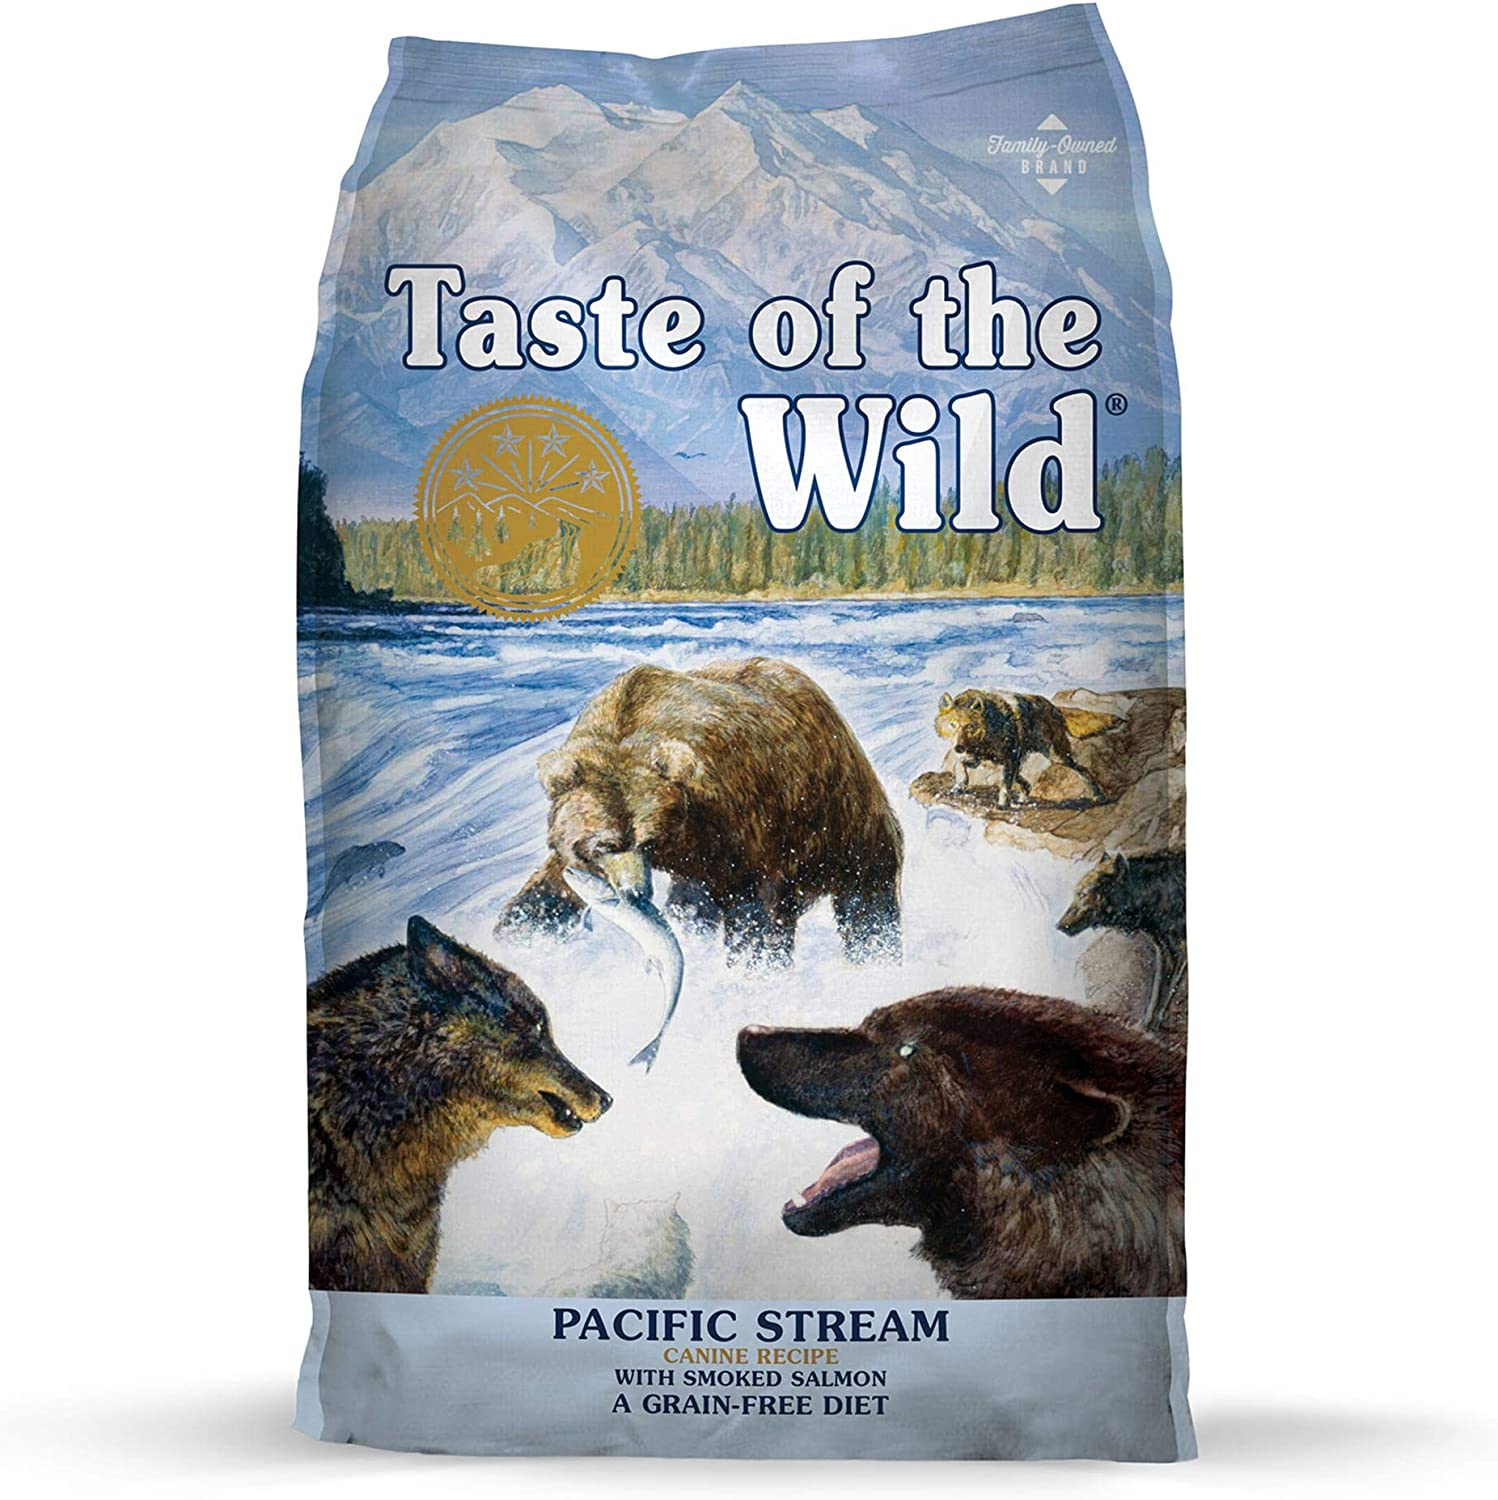 3. Taste of the Wild Pacific Stream Grain-Free Dry Dog Food